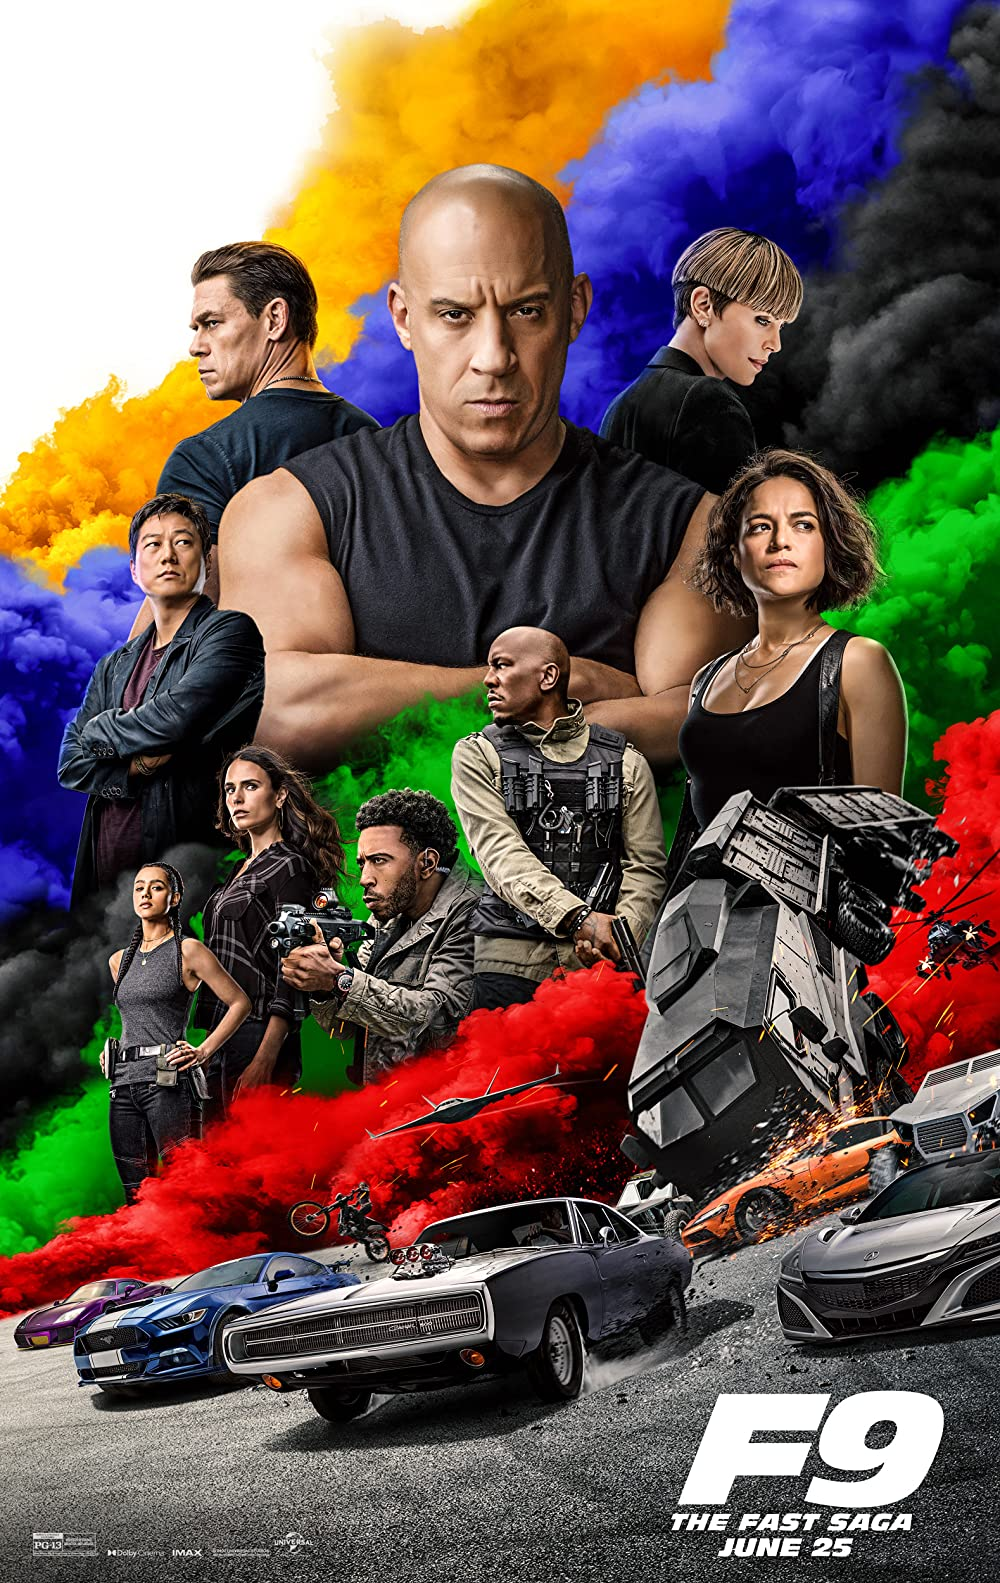 Fast & Furious 9 2021 Hindi Dubbed Official Trailer 2 1080p HDRip 81MB Download